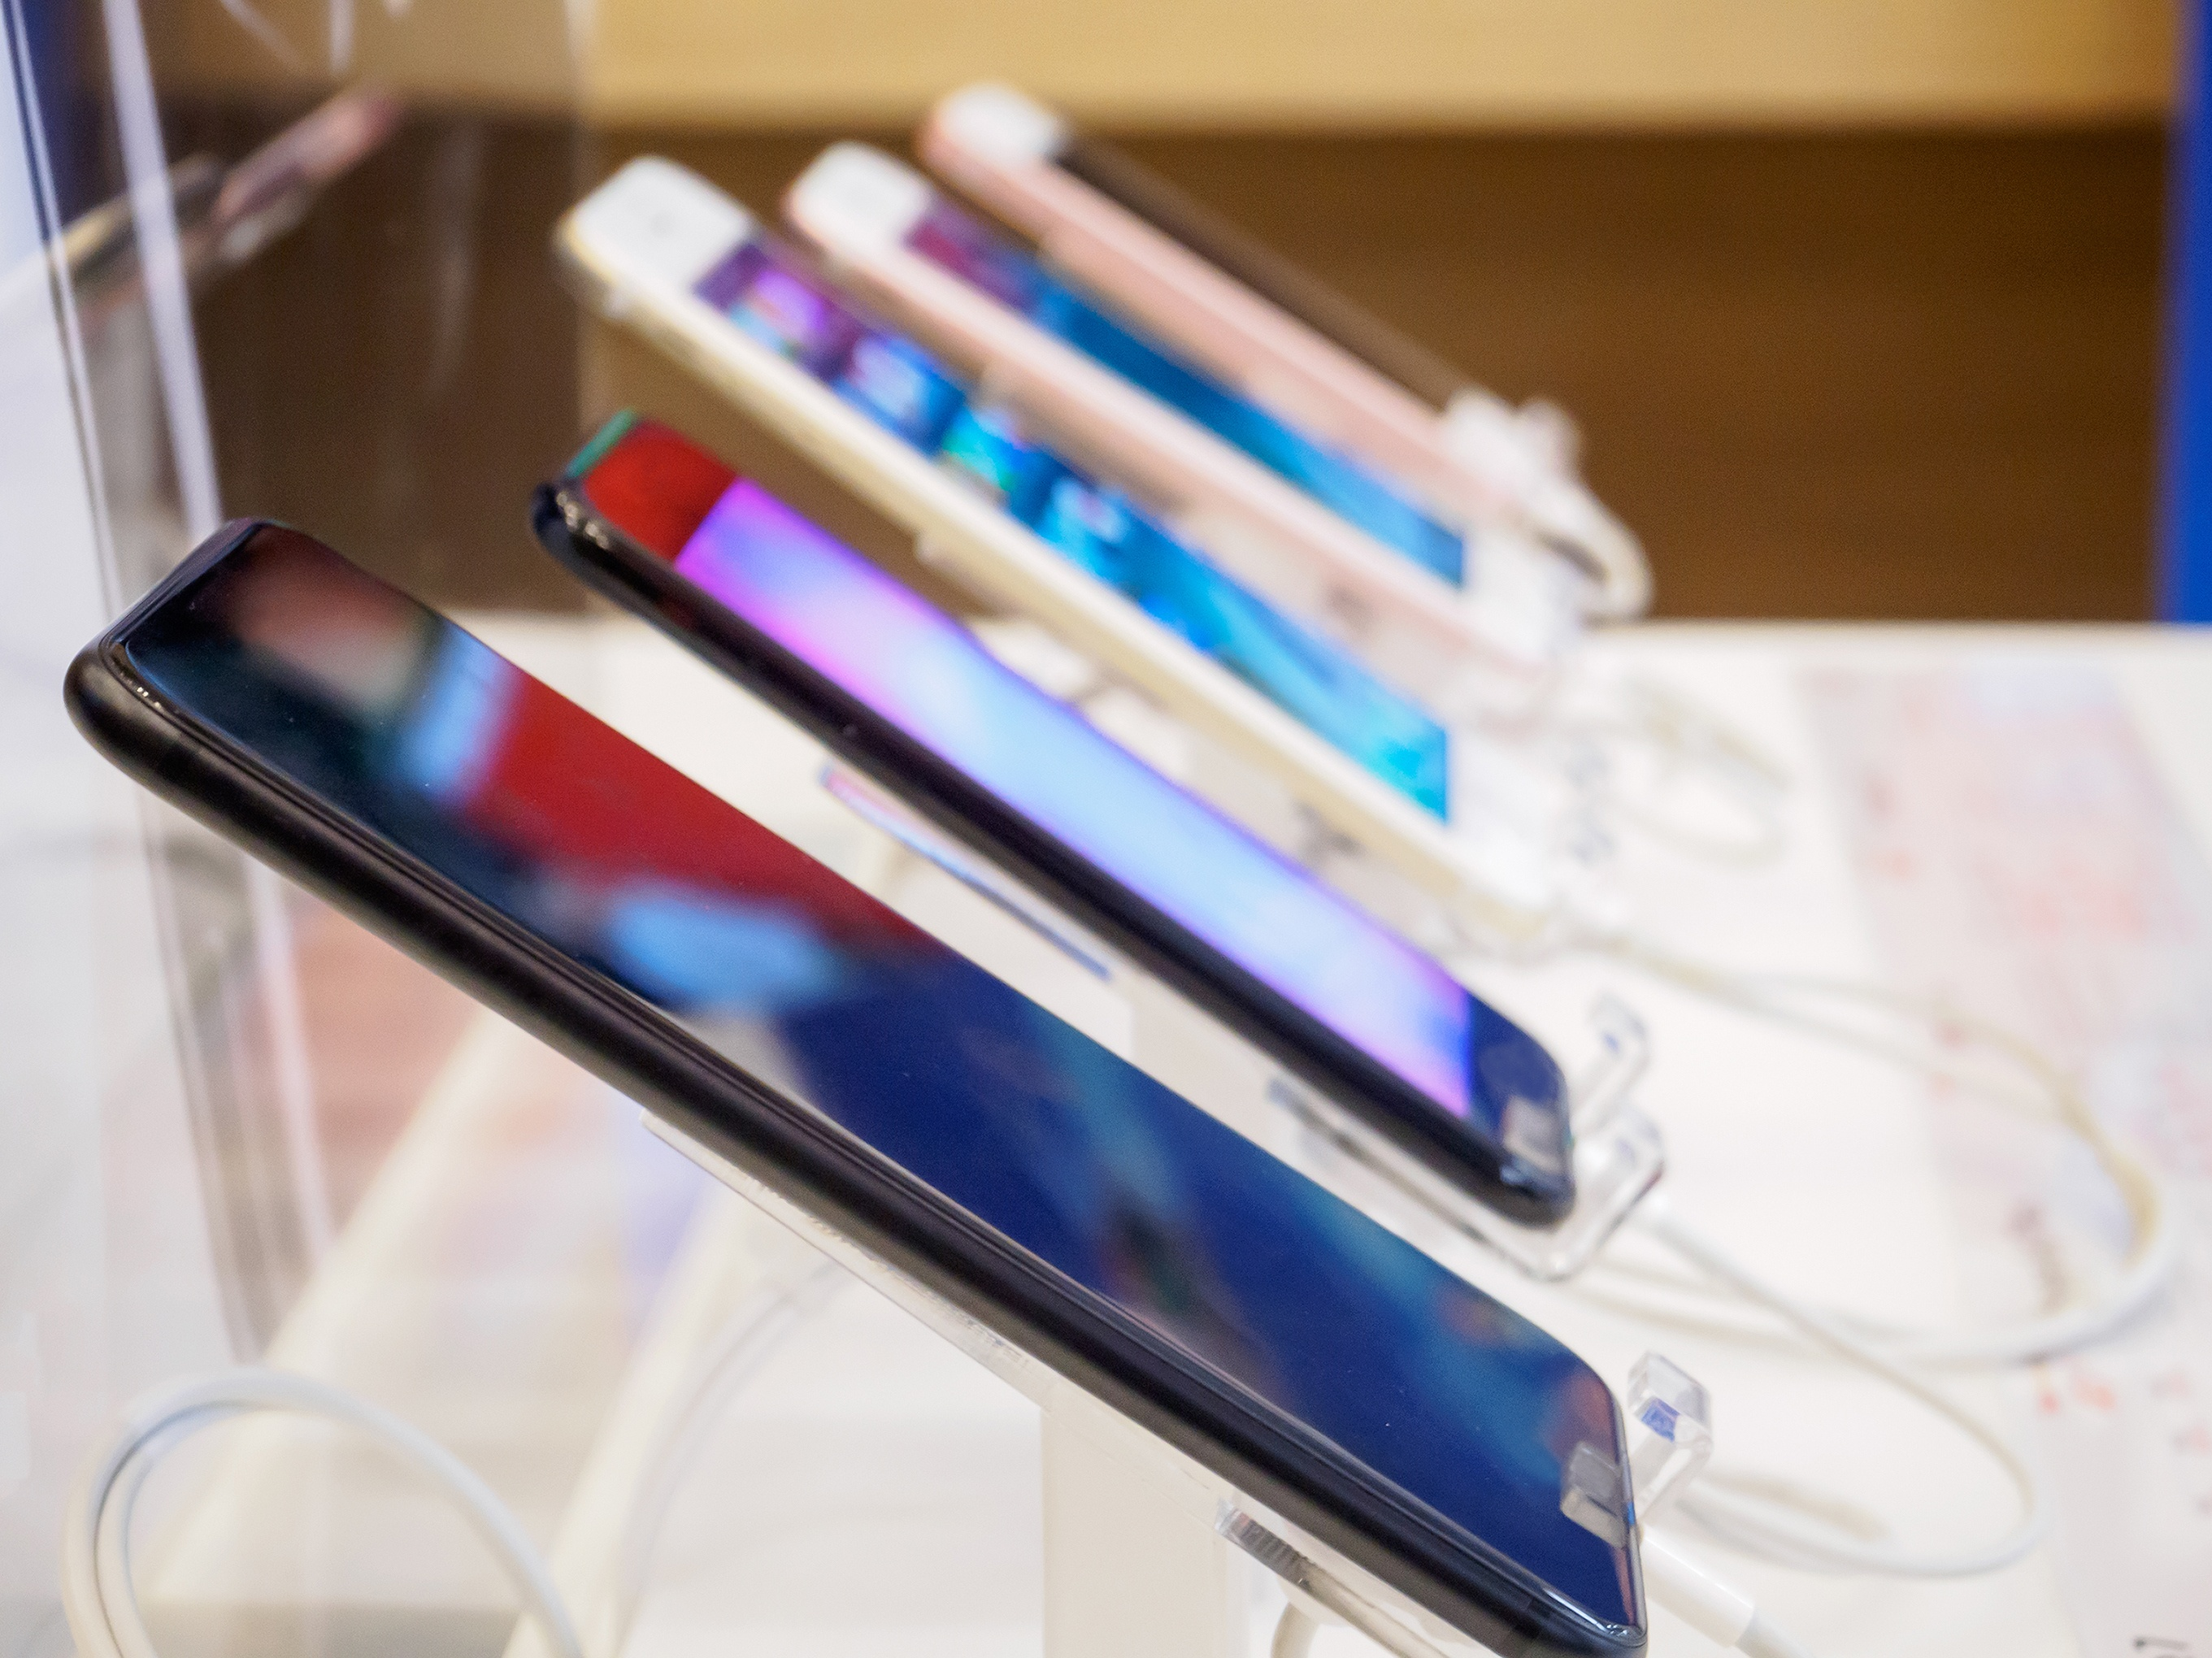 Supply chain planning for smartphones